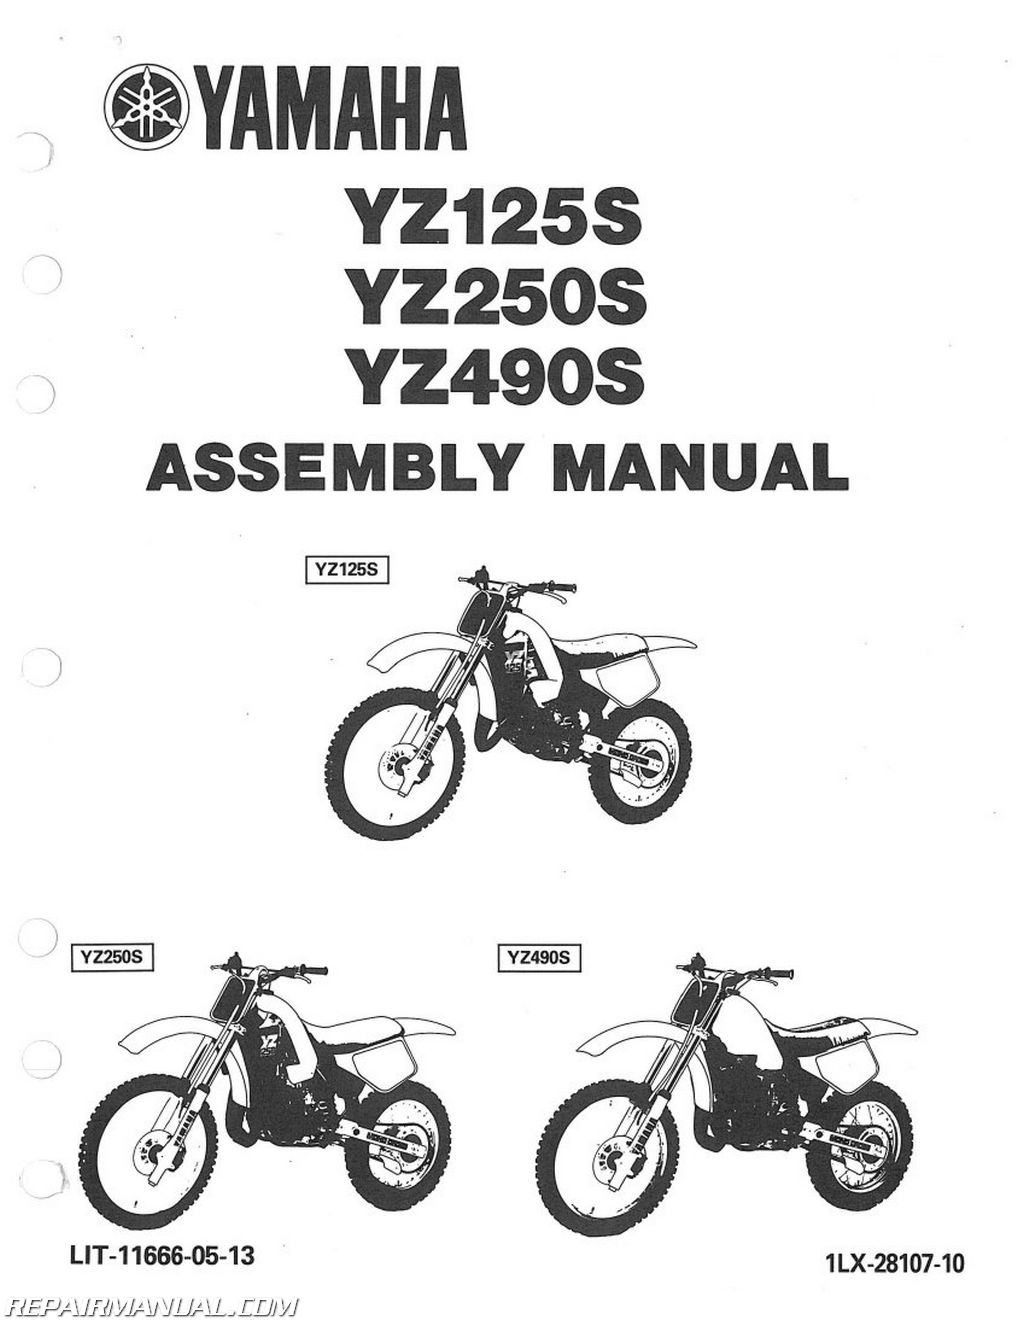 1986 yamaha yz125s yz250s yz490s assembly manual. Black Bedroom Furniture Sets. Home Design Ideas